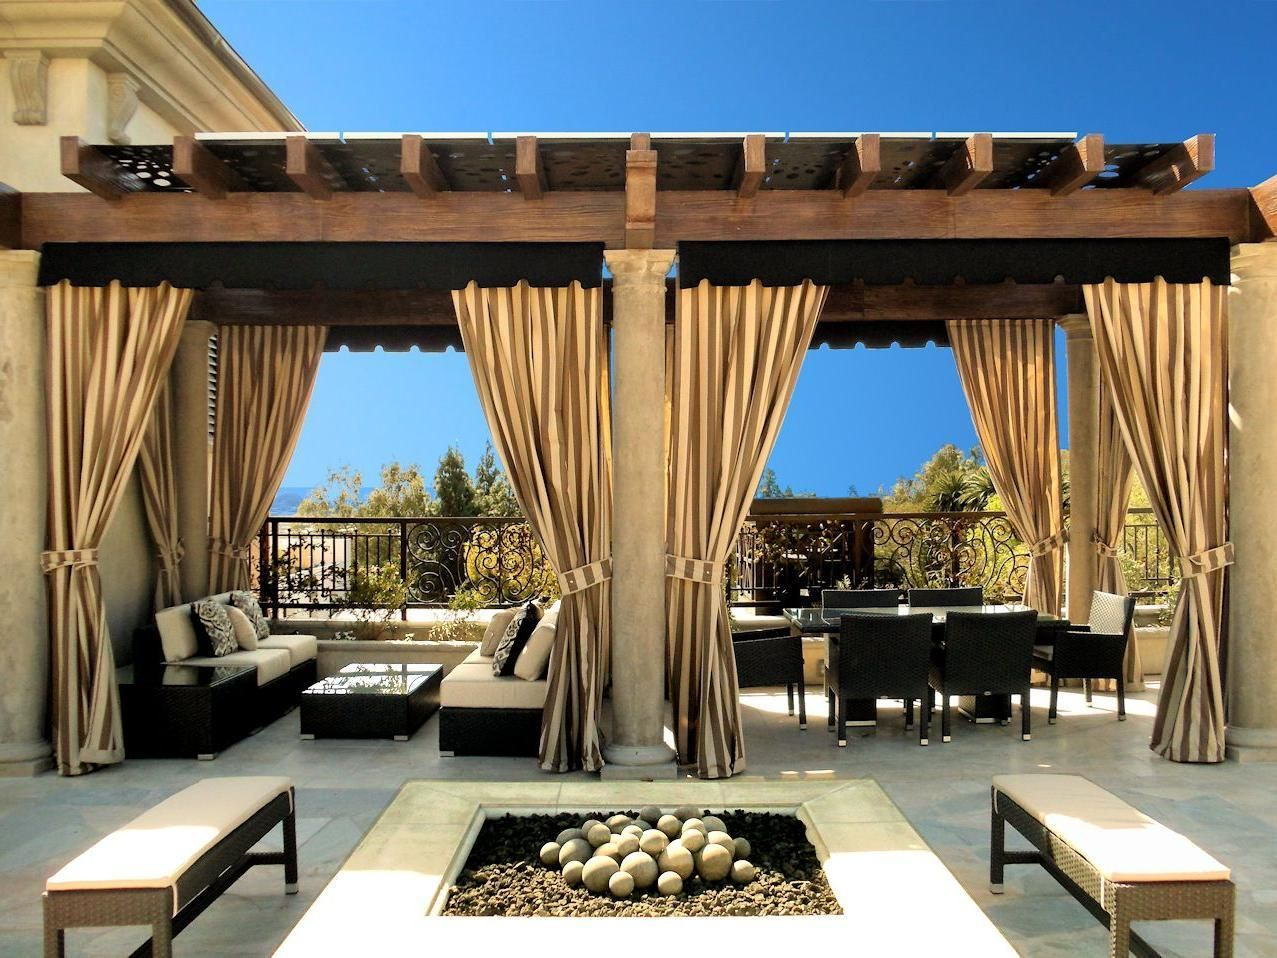 Captivating Italian Outdoor Patio With Elegant Outdoor Curtains